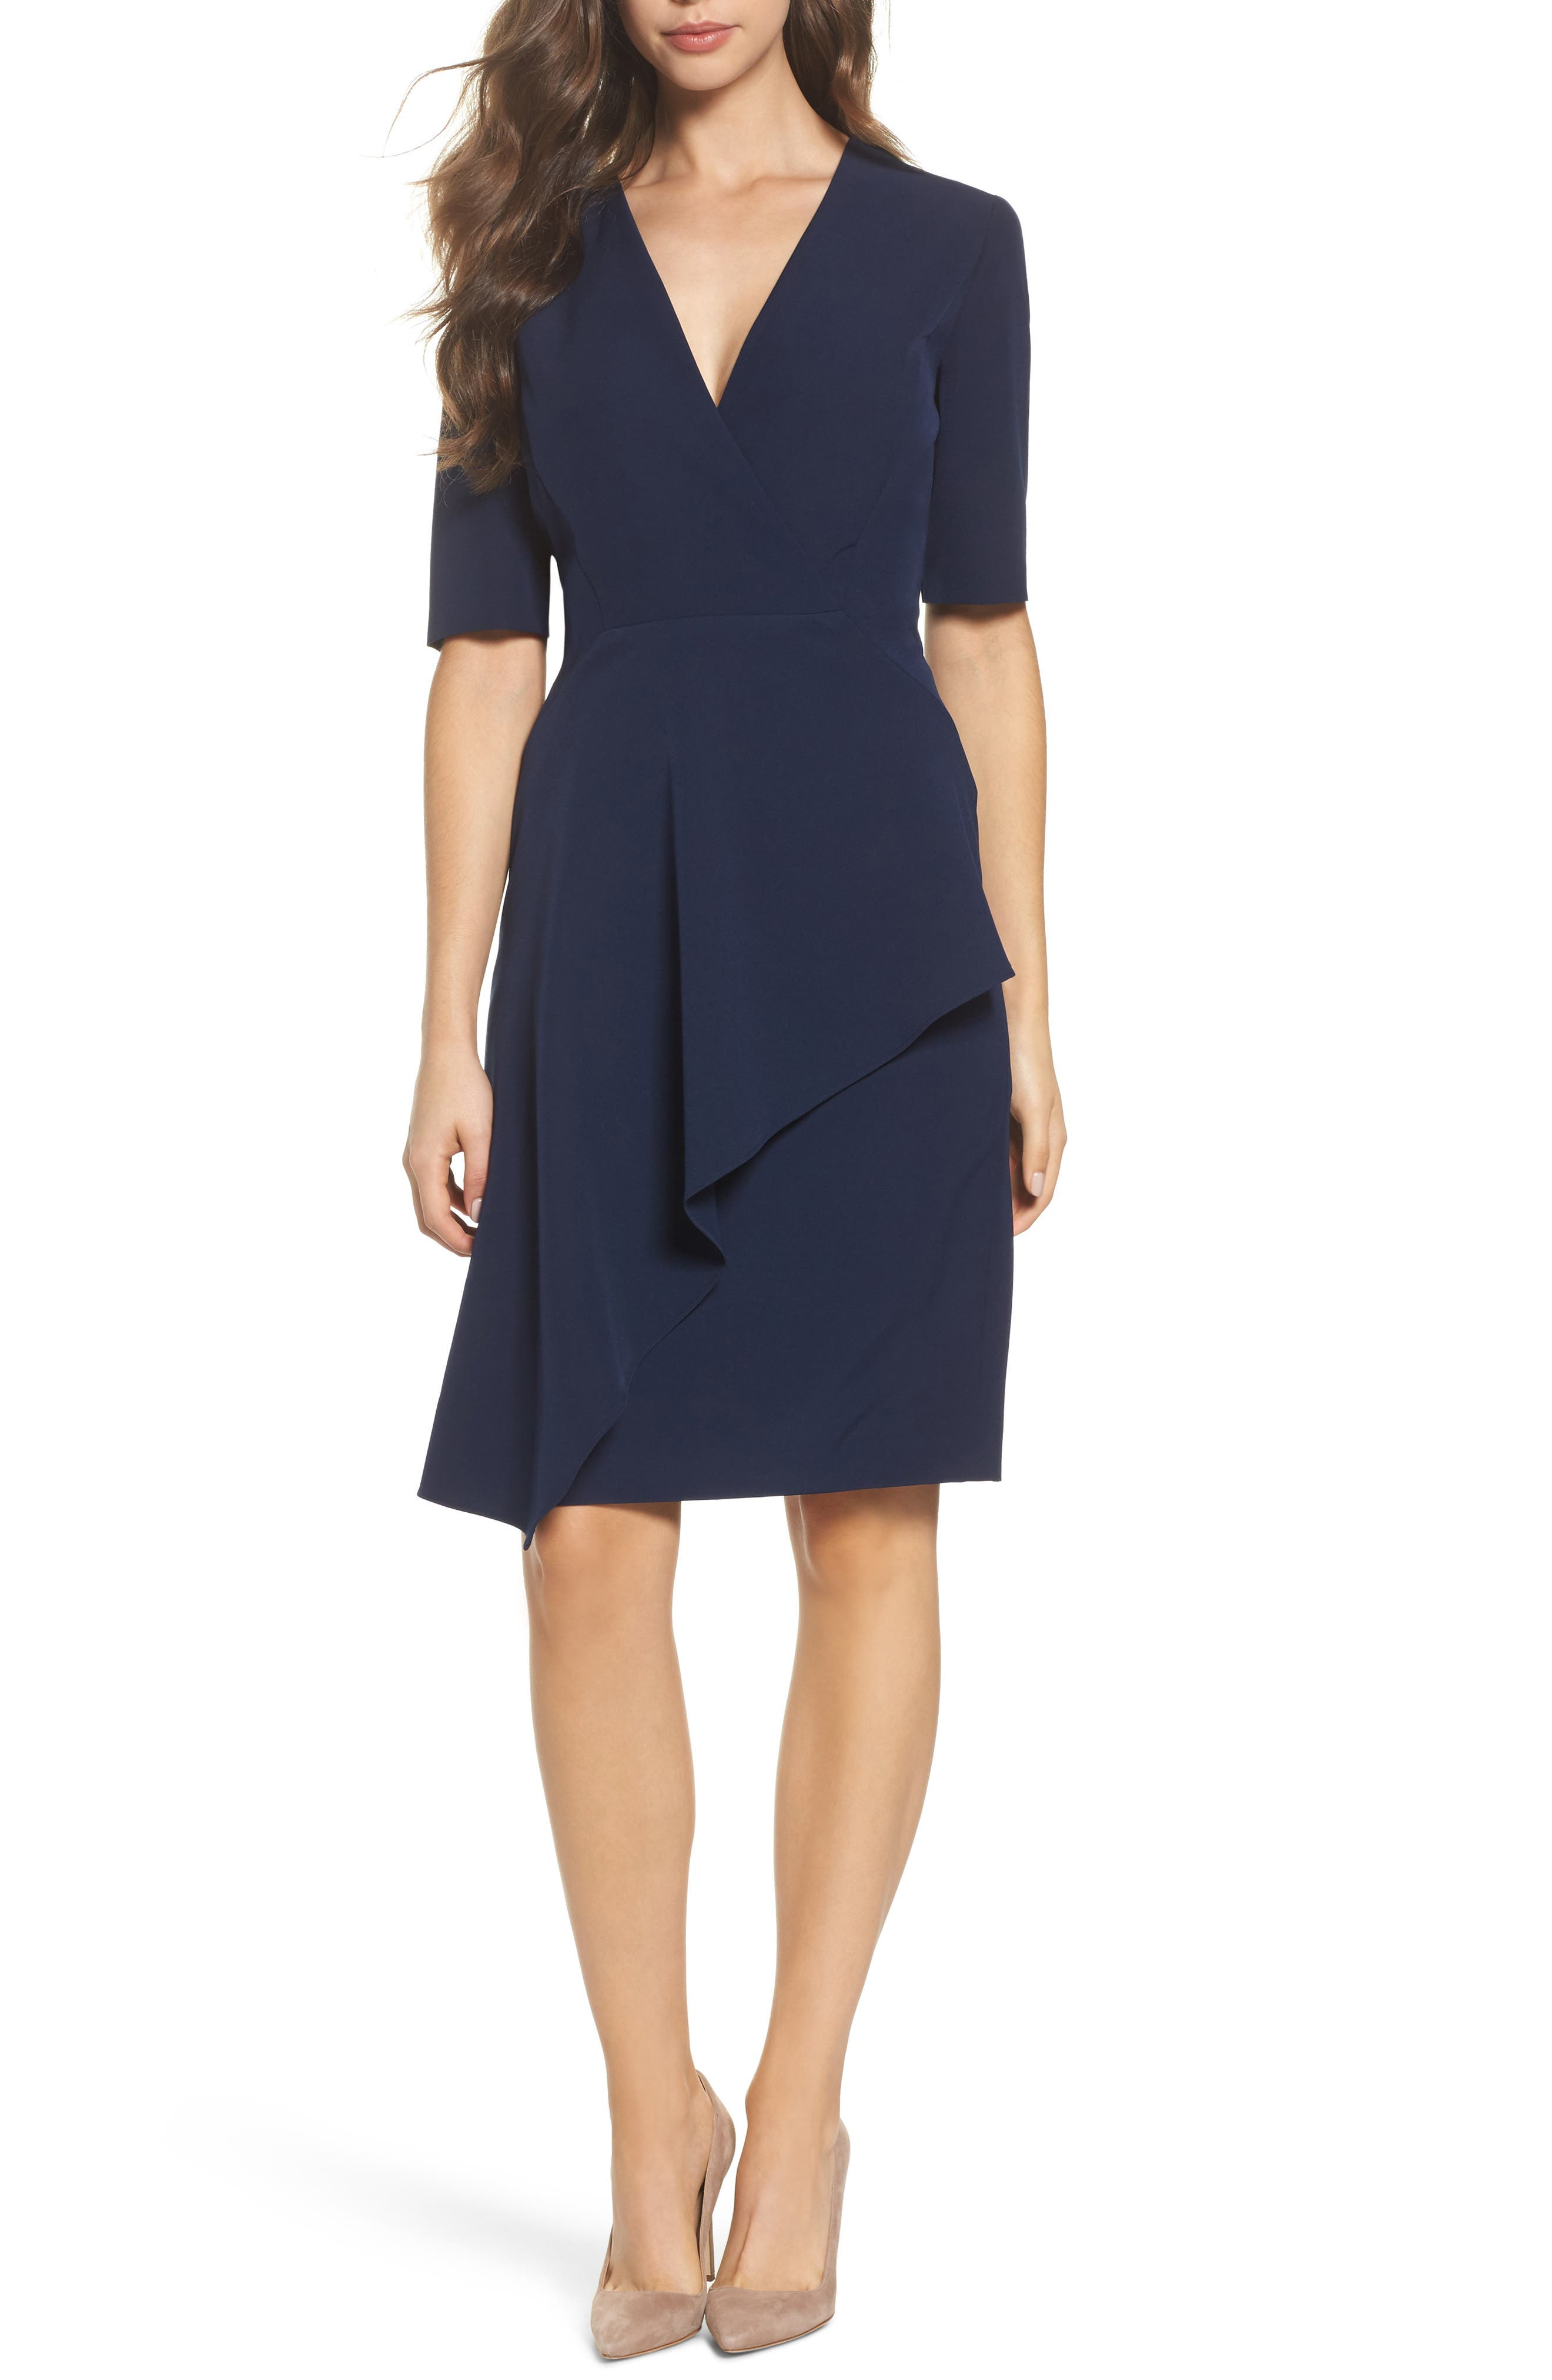 Alternate Image 1 Selected - Maggy London Solid Dream Crepe Sheath Dress